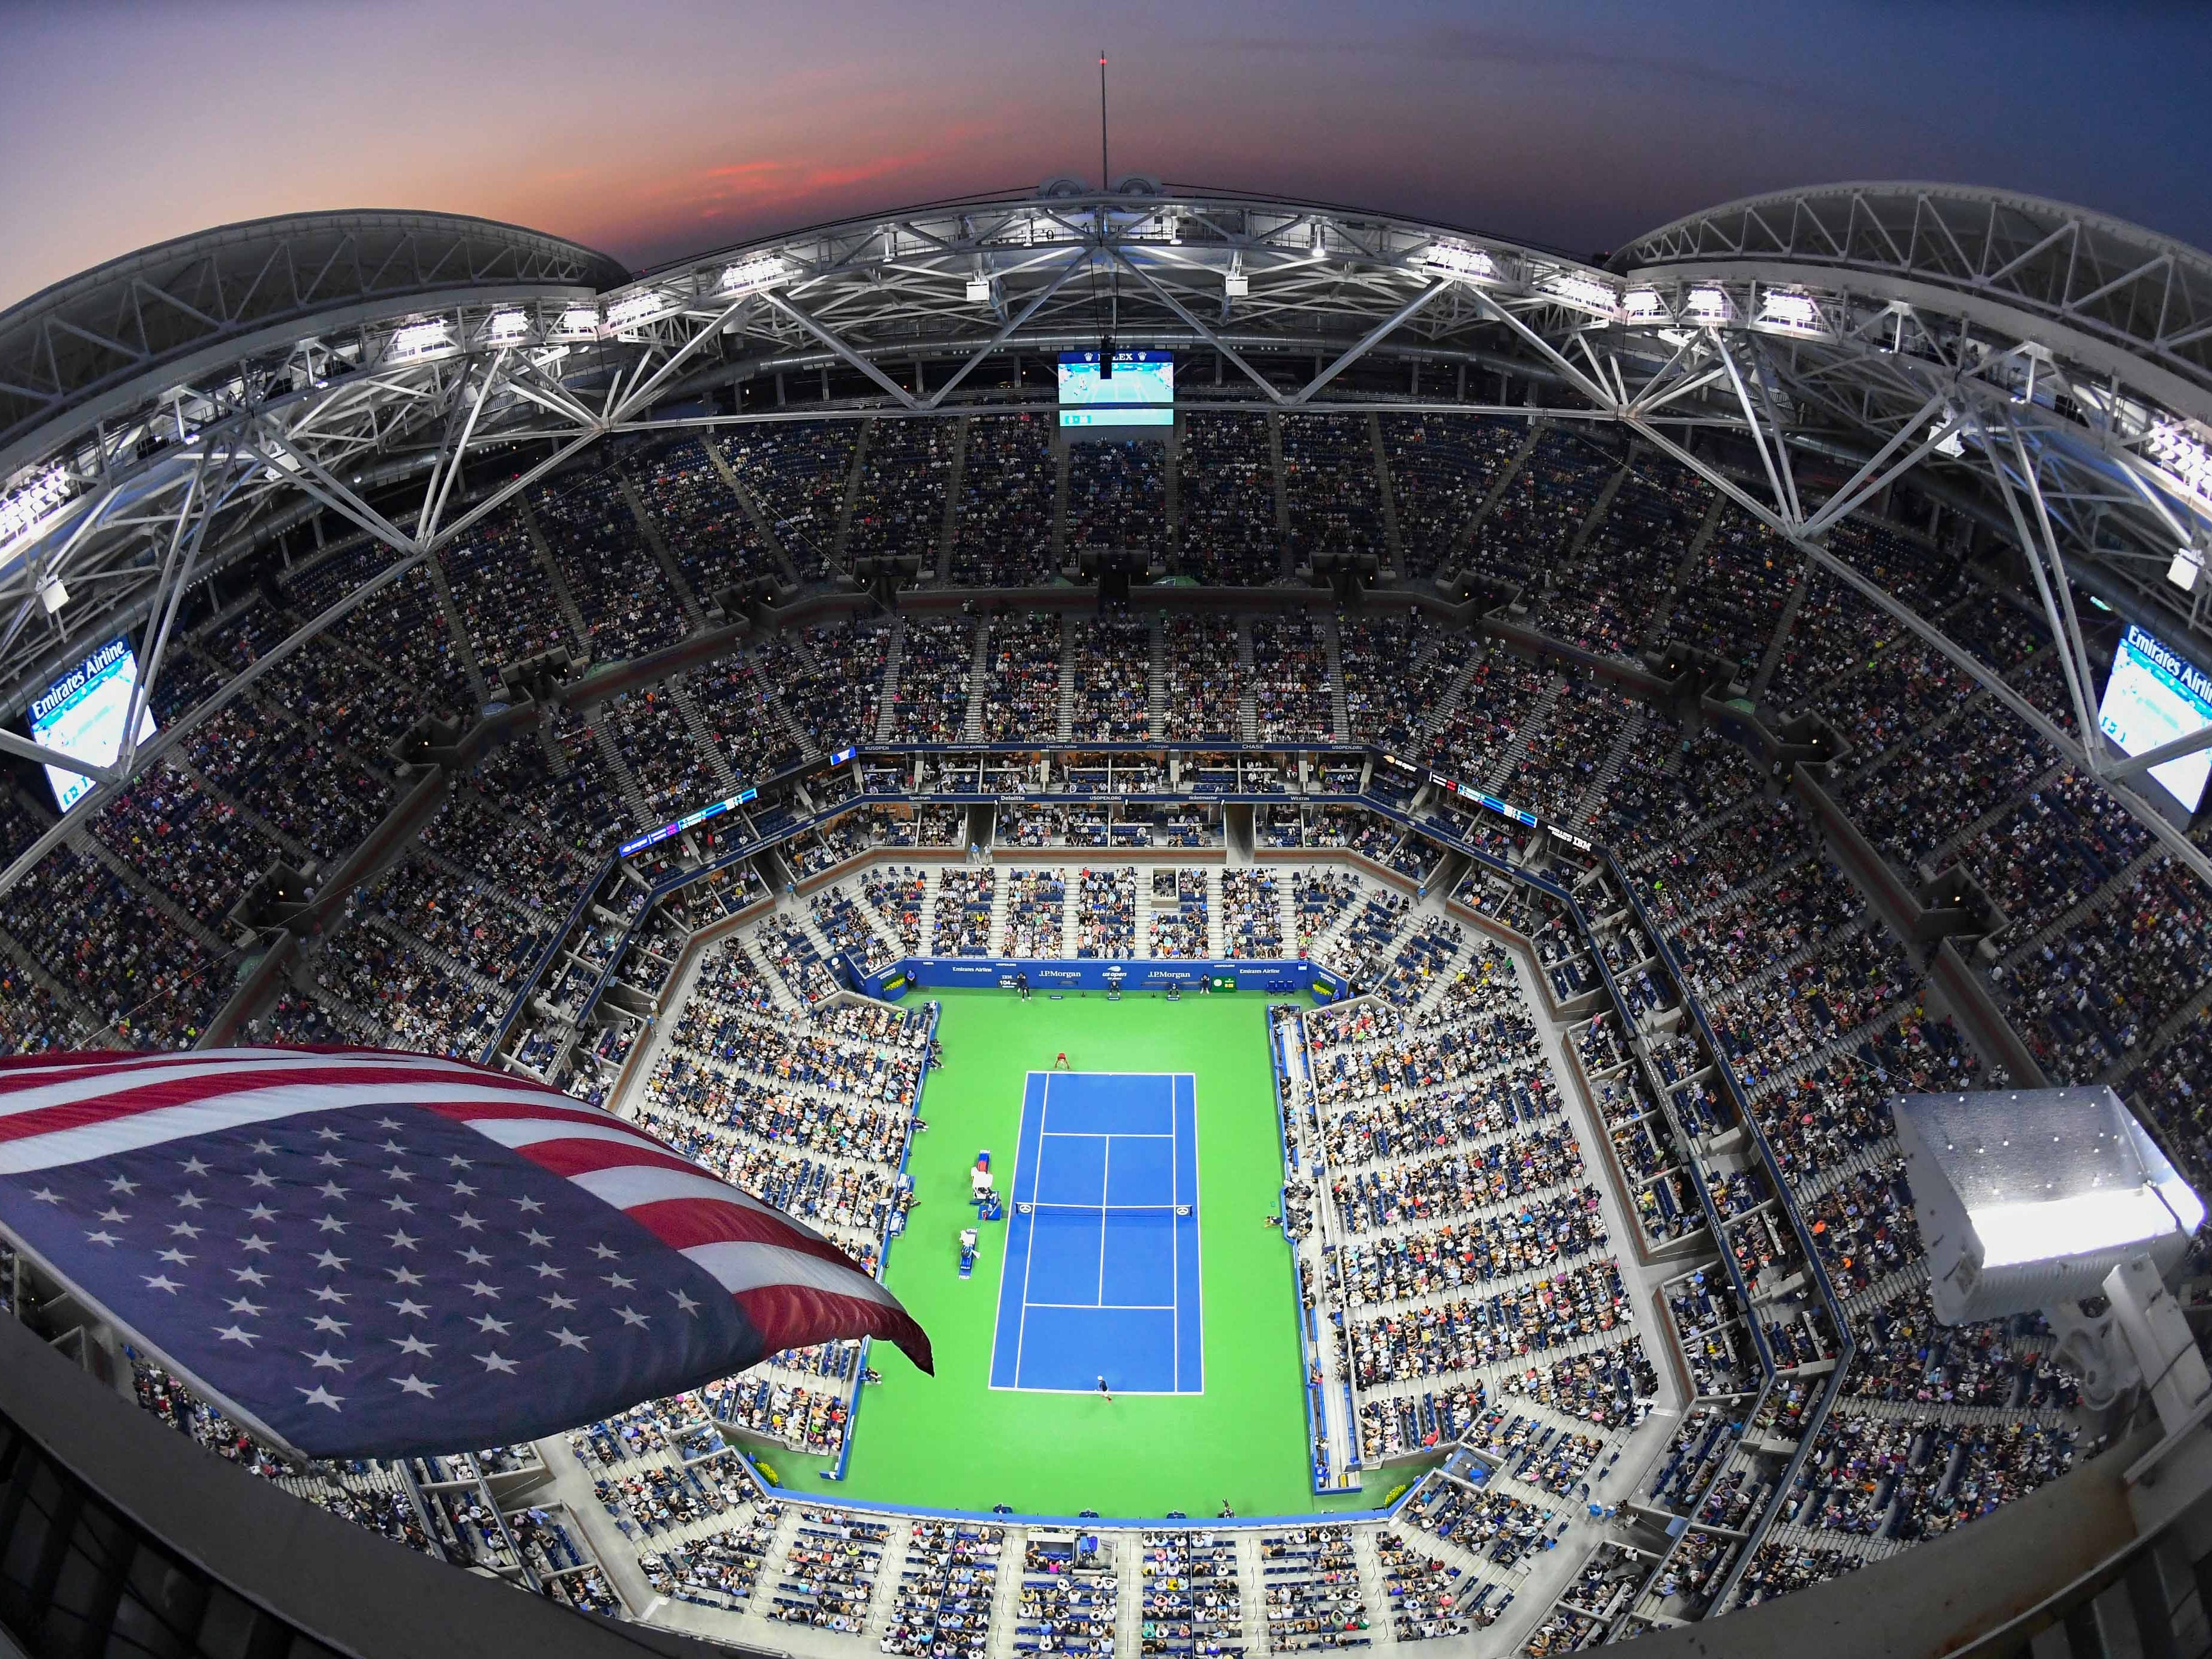 Night falls at Arthur Ashe Stadium.